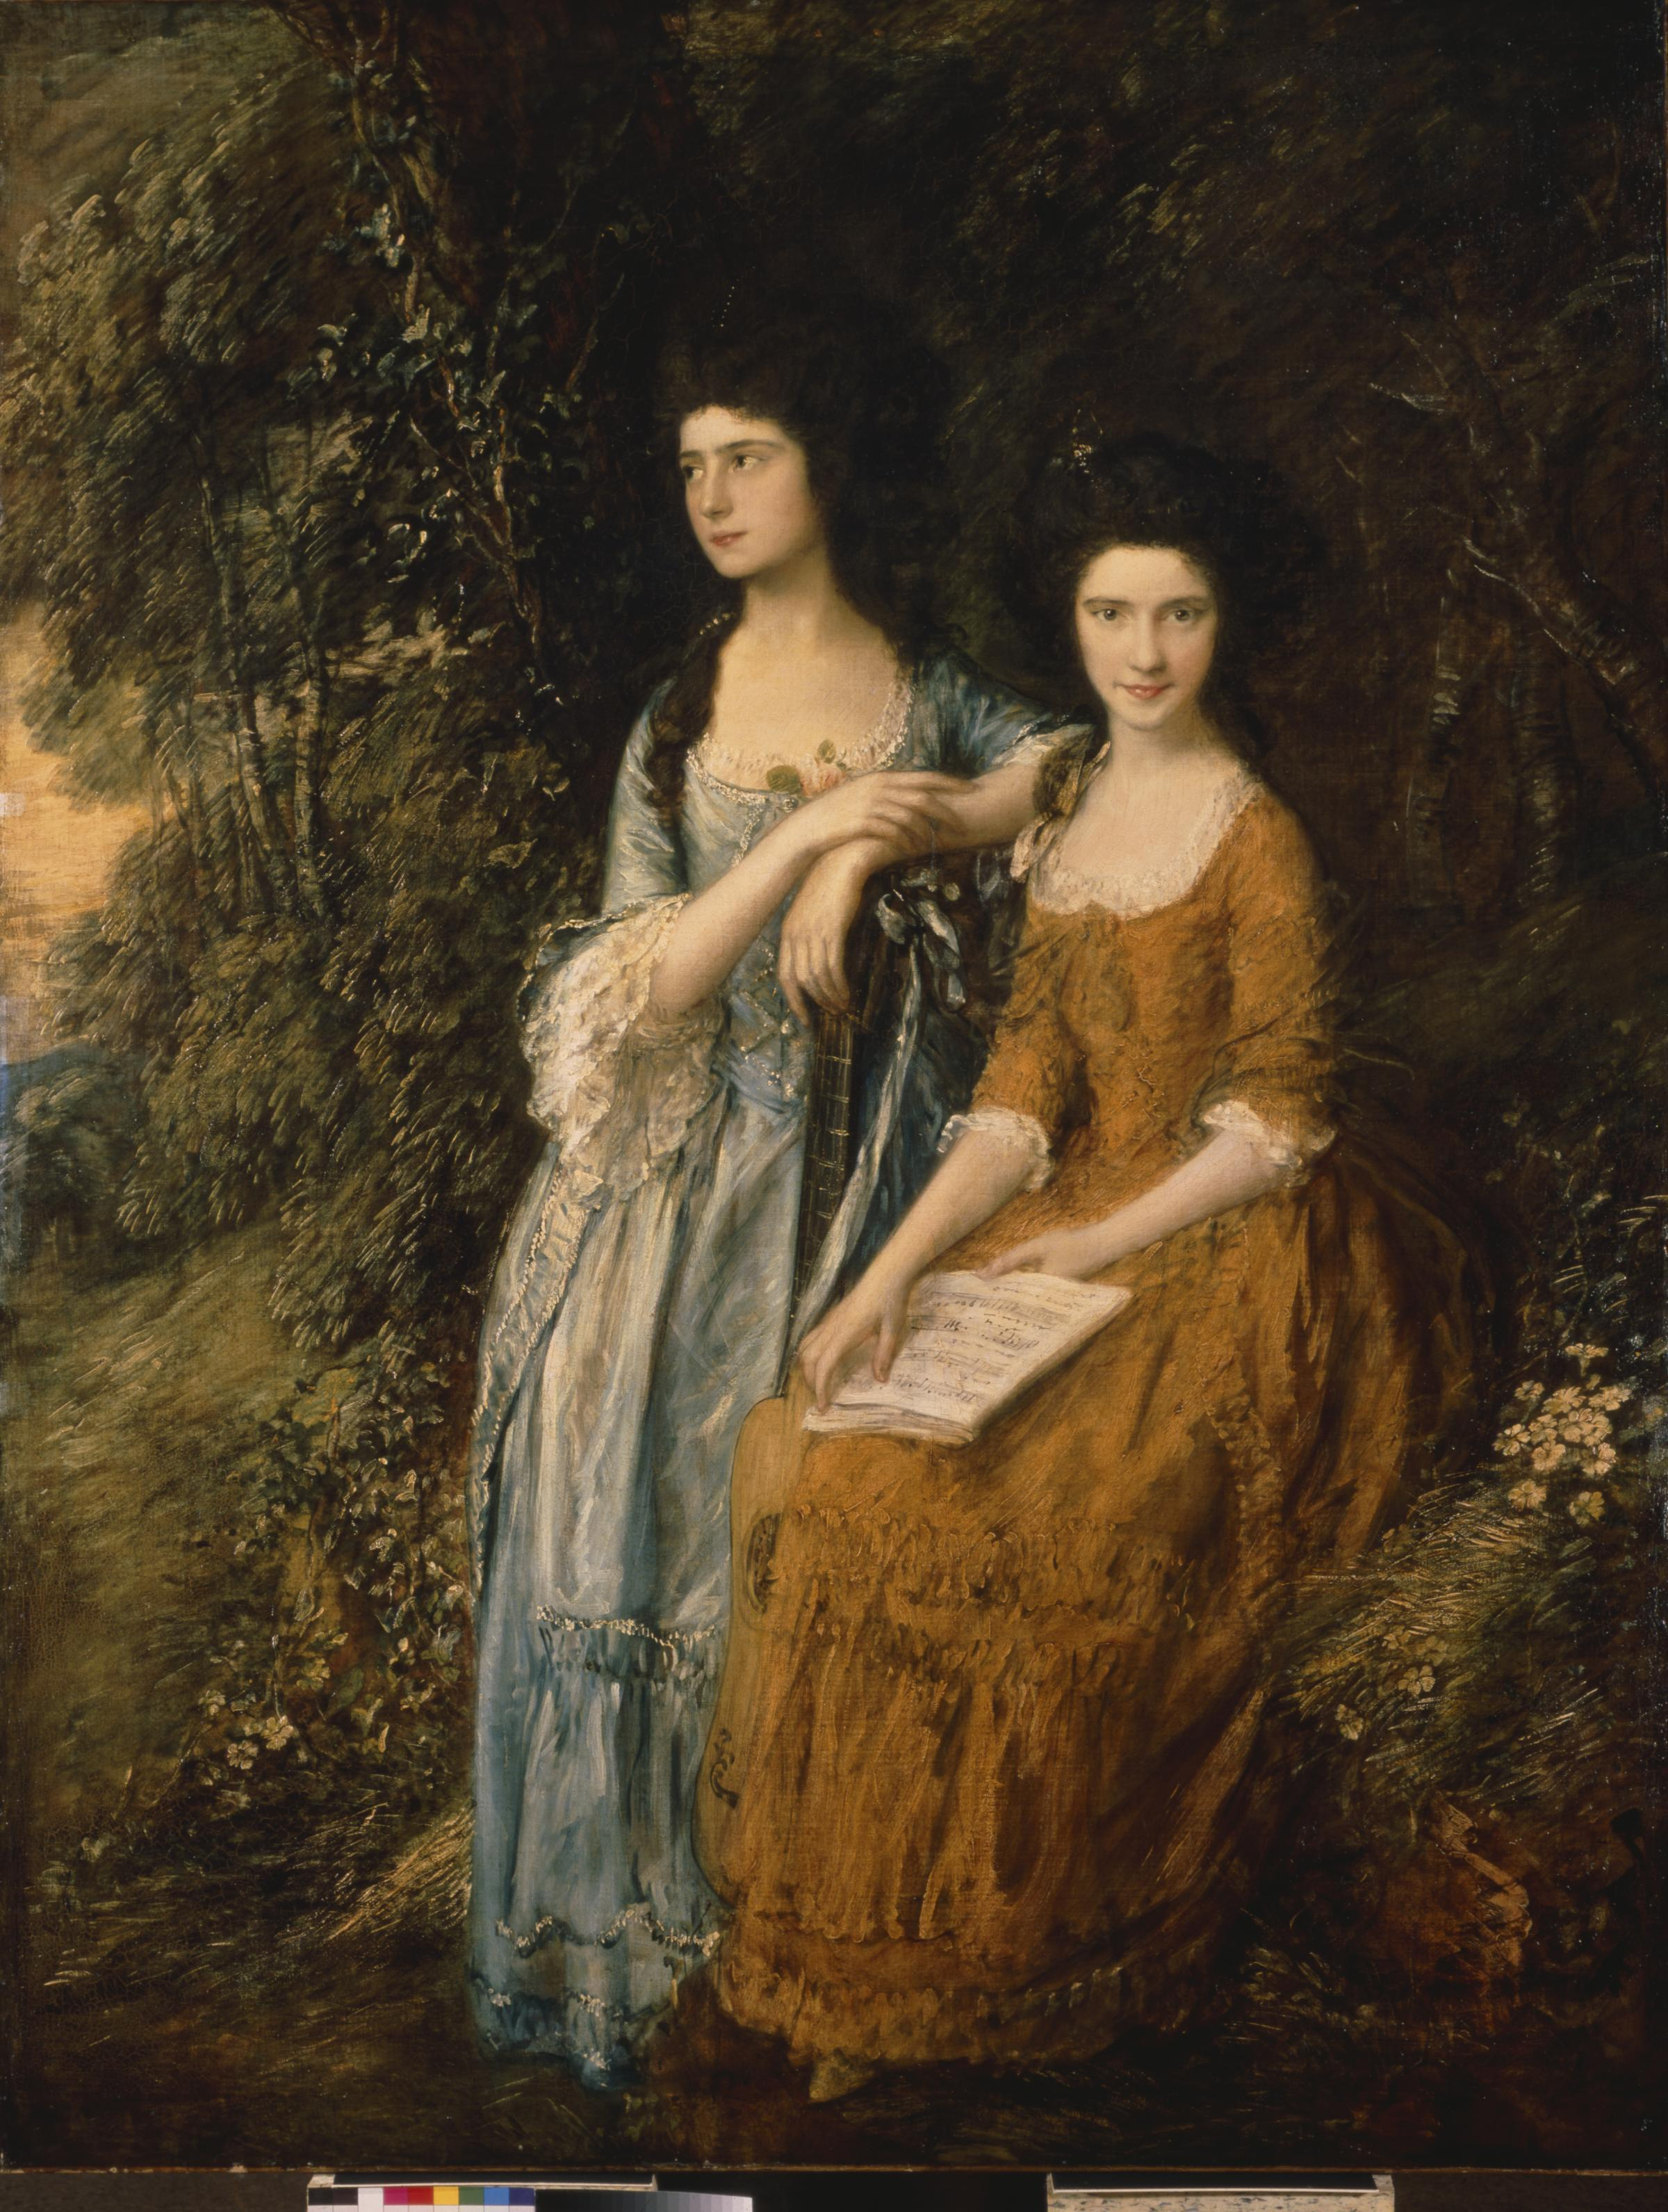 Gainsborough: Putting Four Paintings into Context